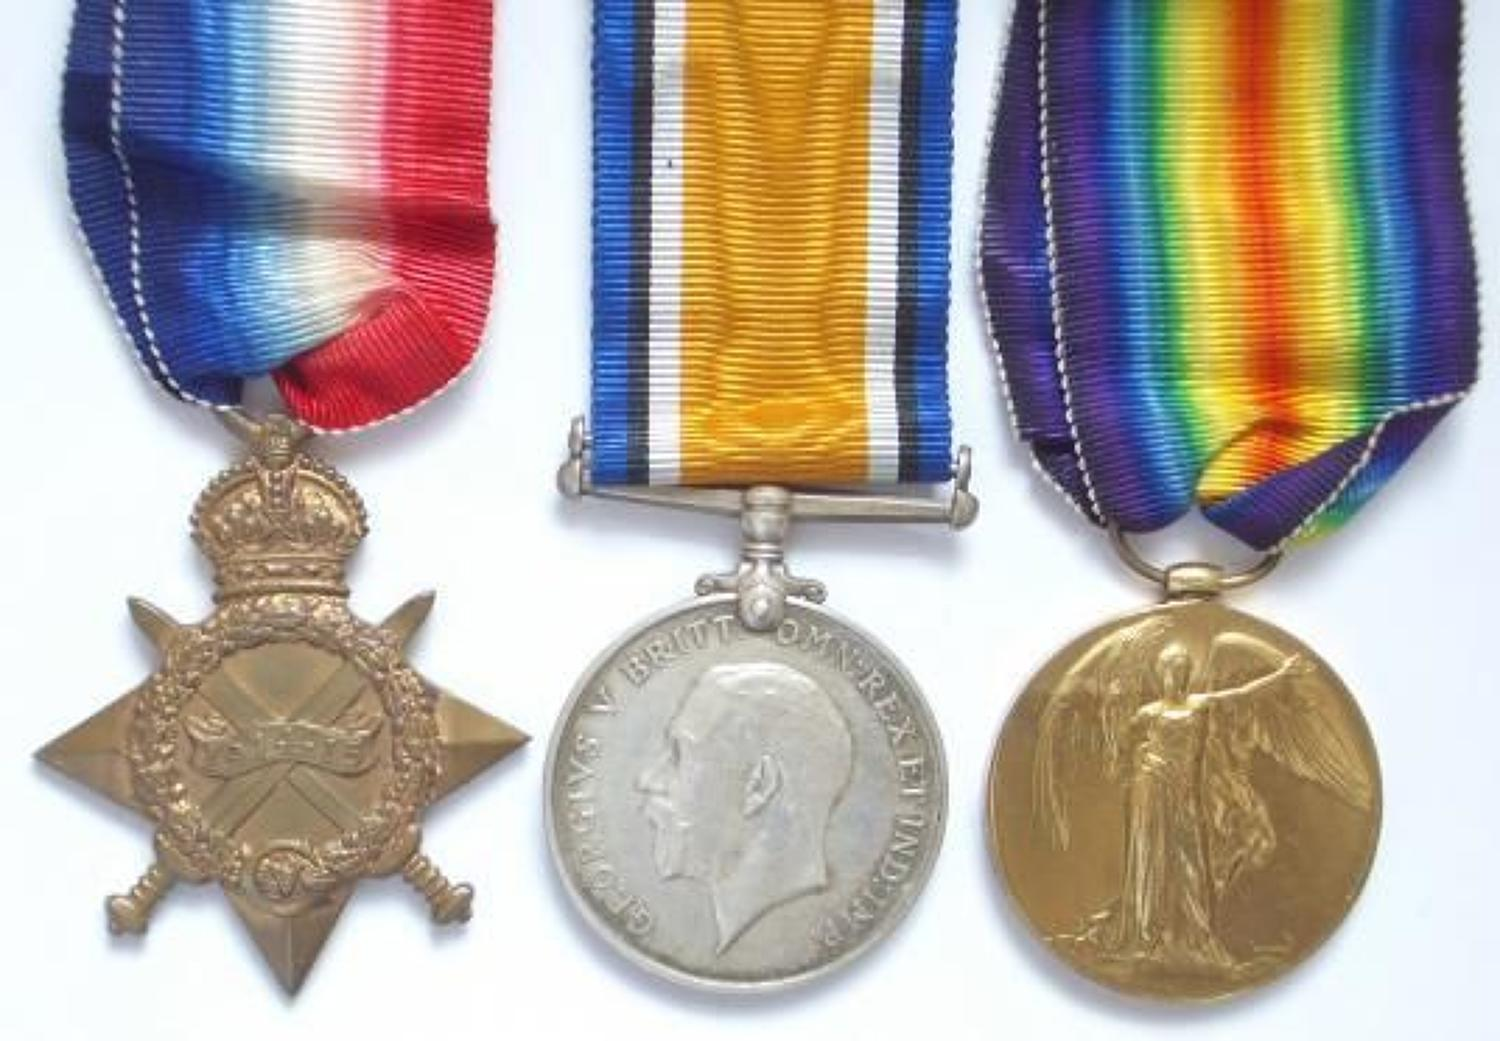 WW1 5th Battalion Wiltshire Regiment Gallipoli Casualty Group of Medal